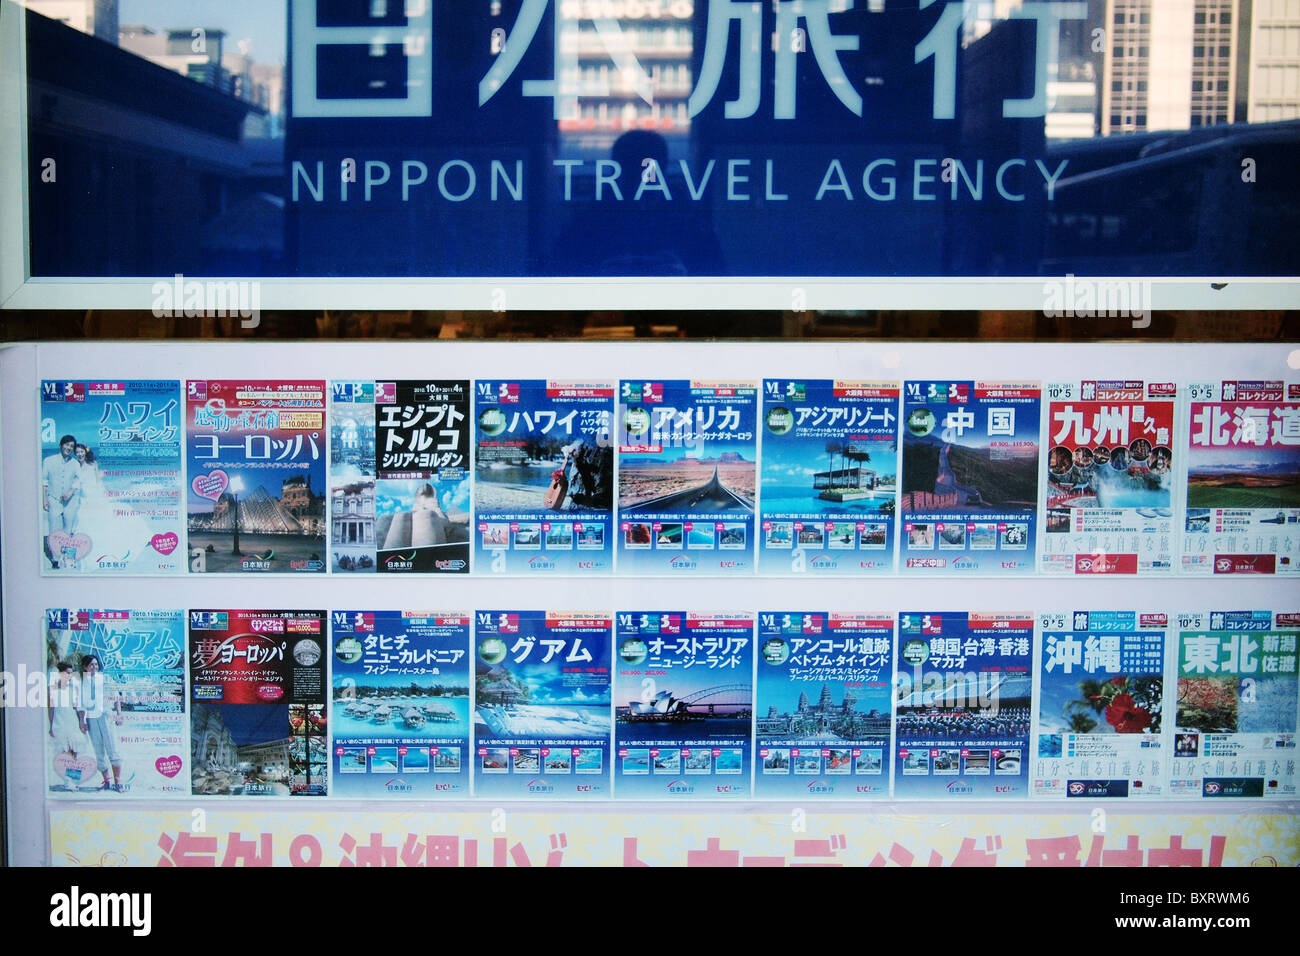 Nippon Travel Agency tourisme maison de poster au Japon Photo Stock